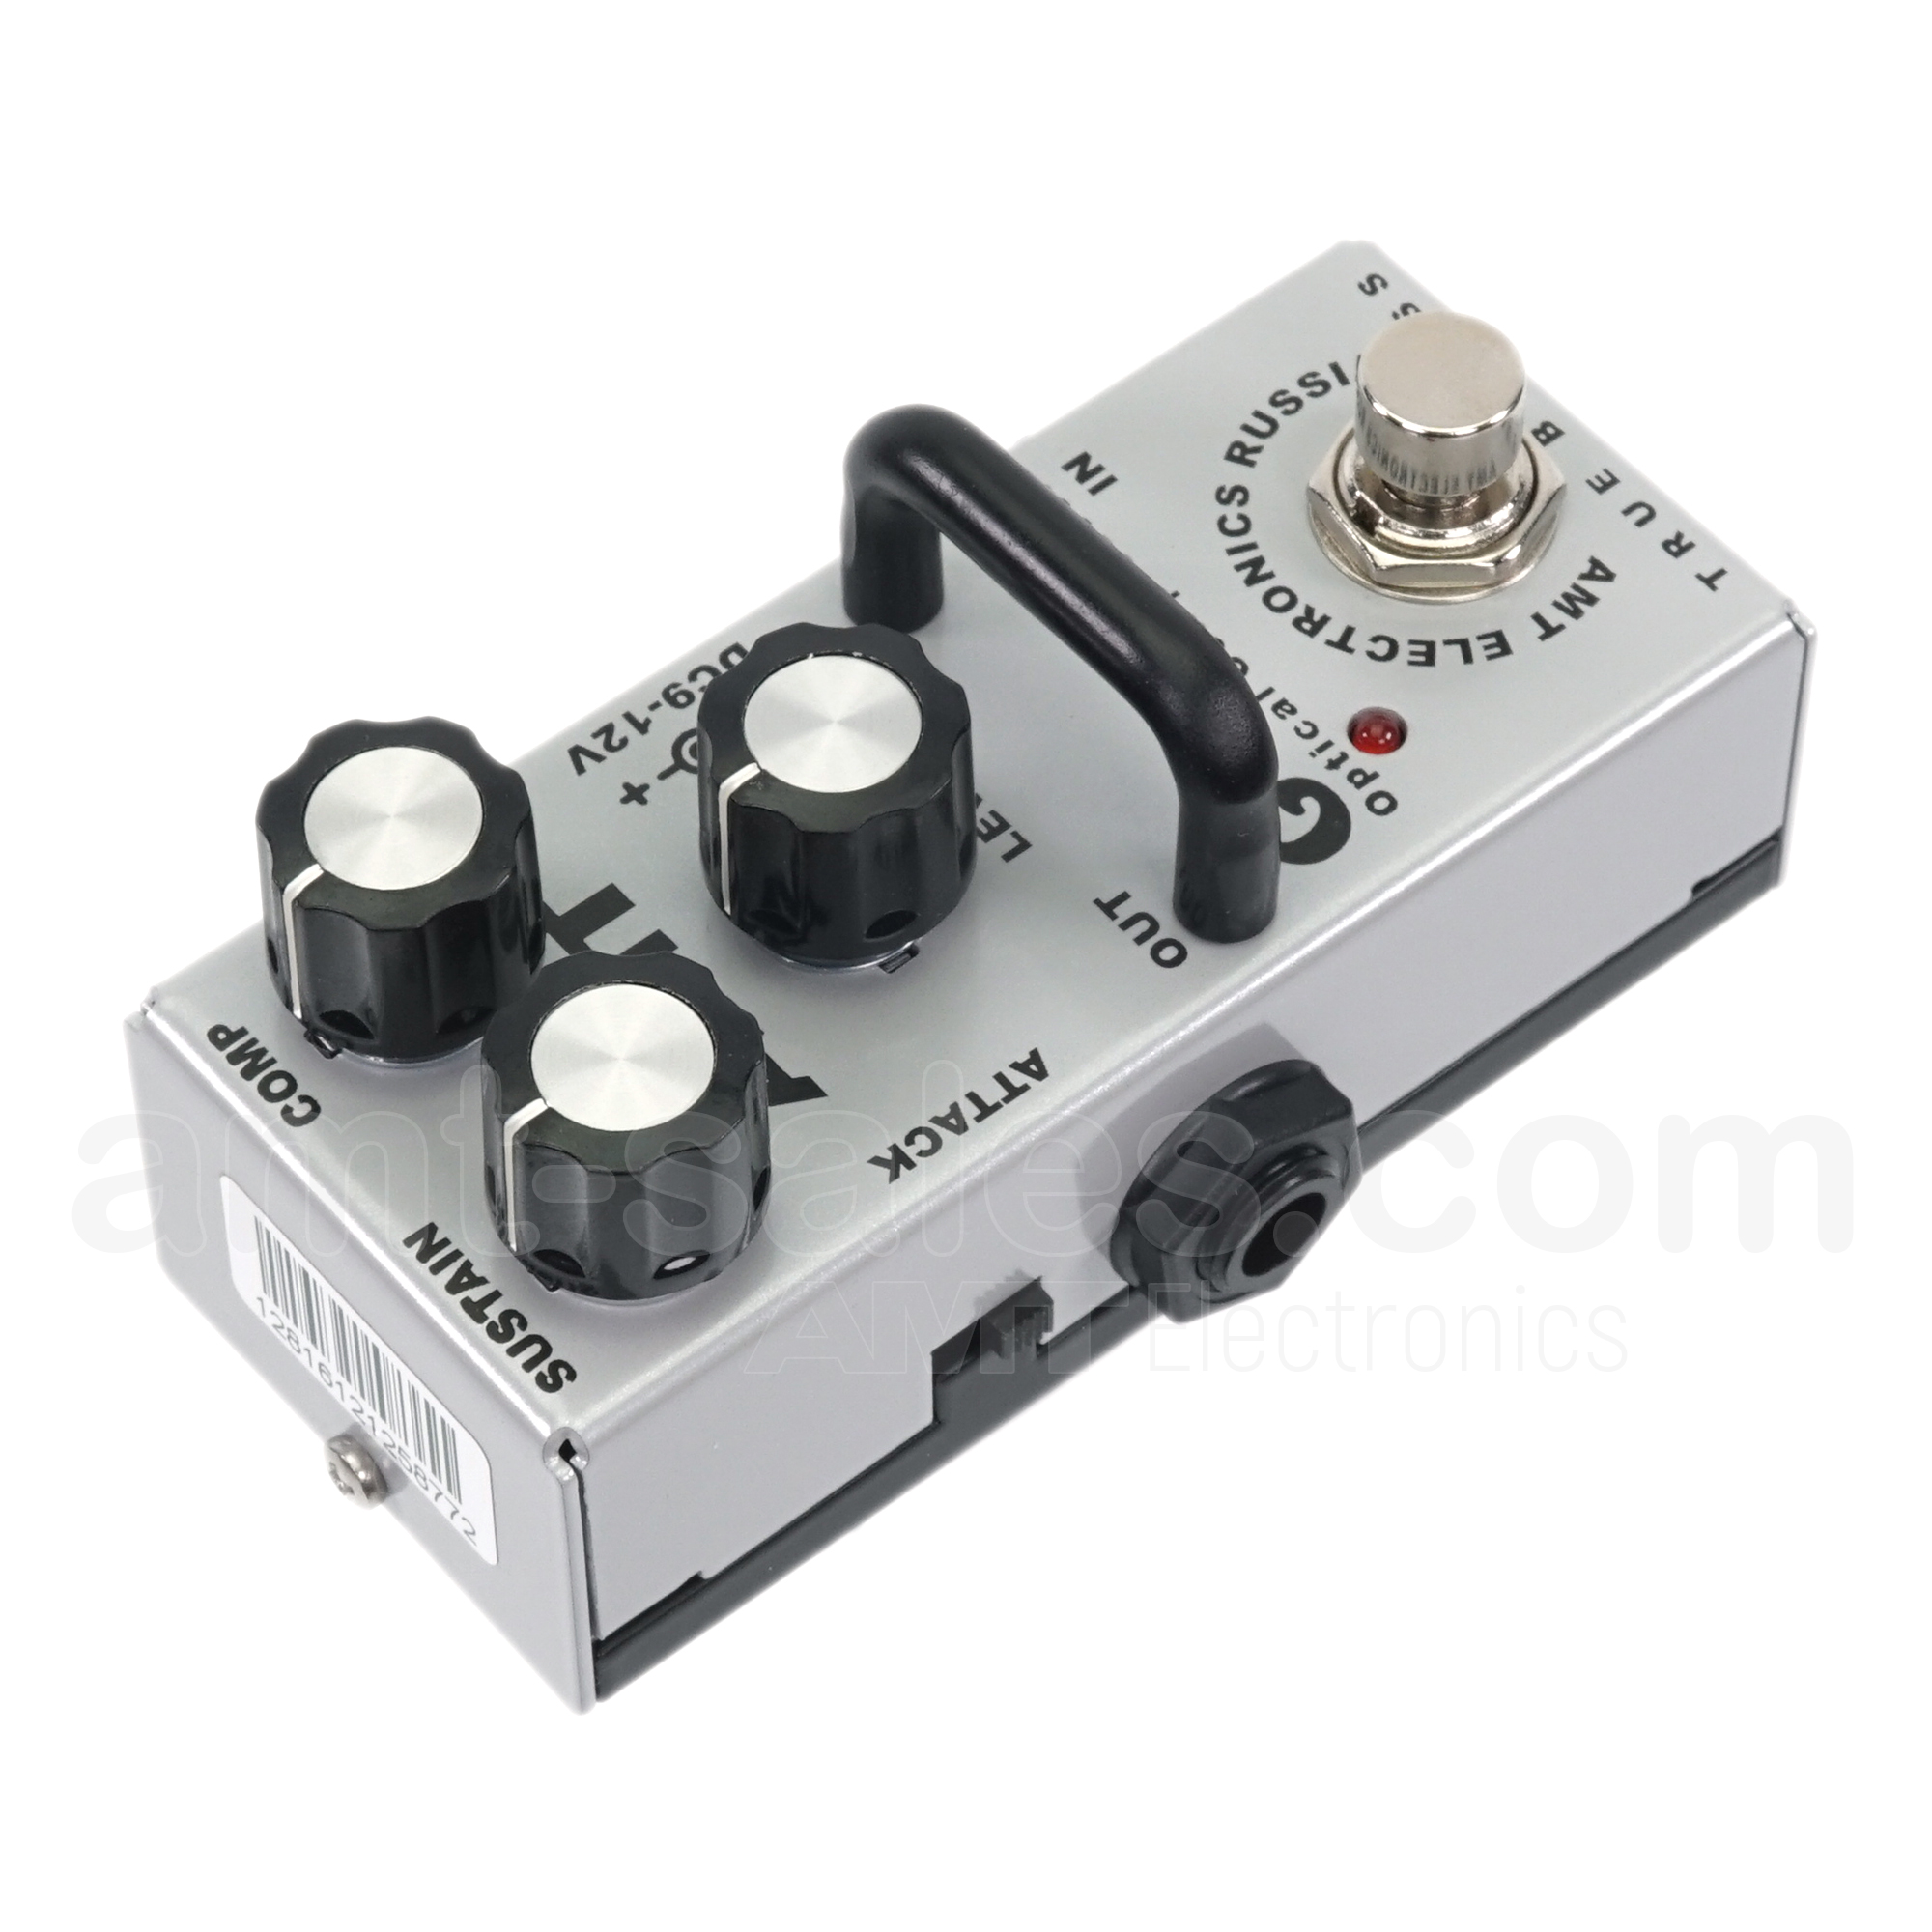 AMT G-Packer - optical compressor for guitar